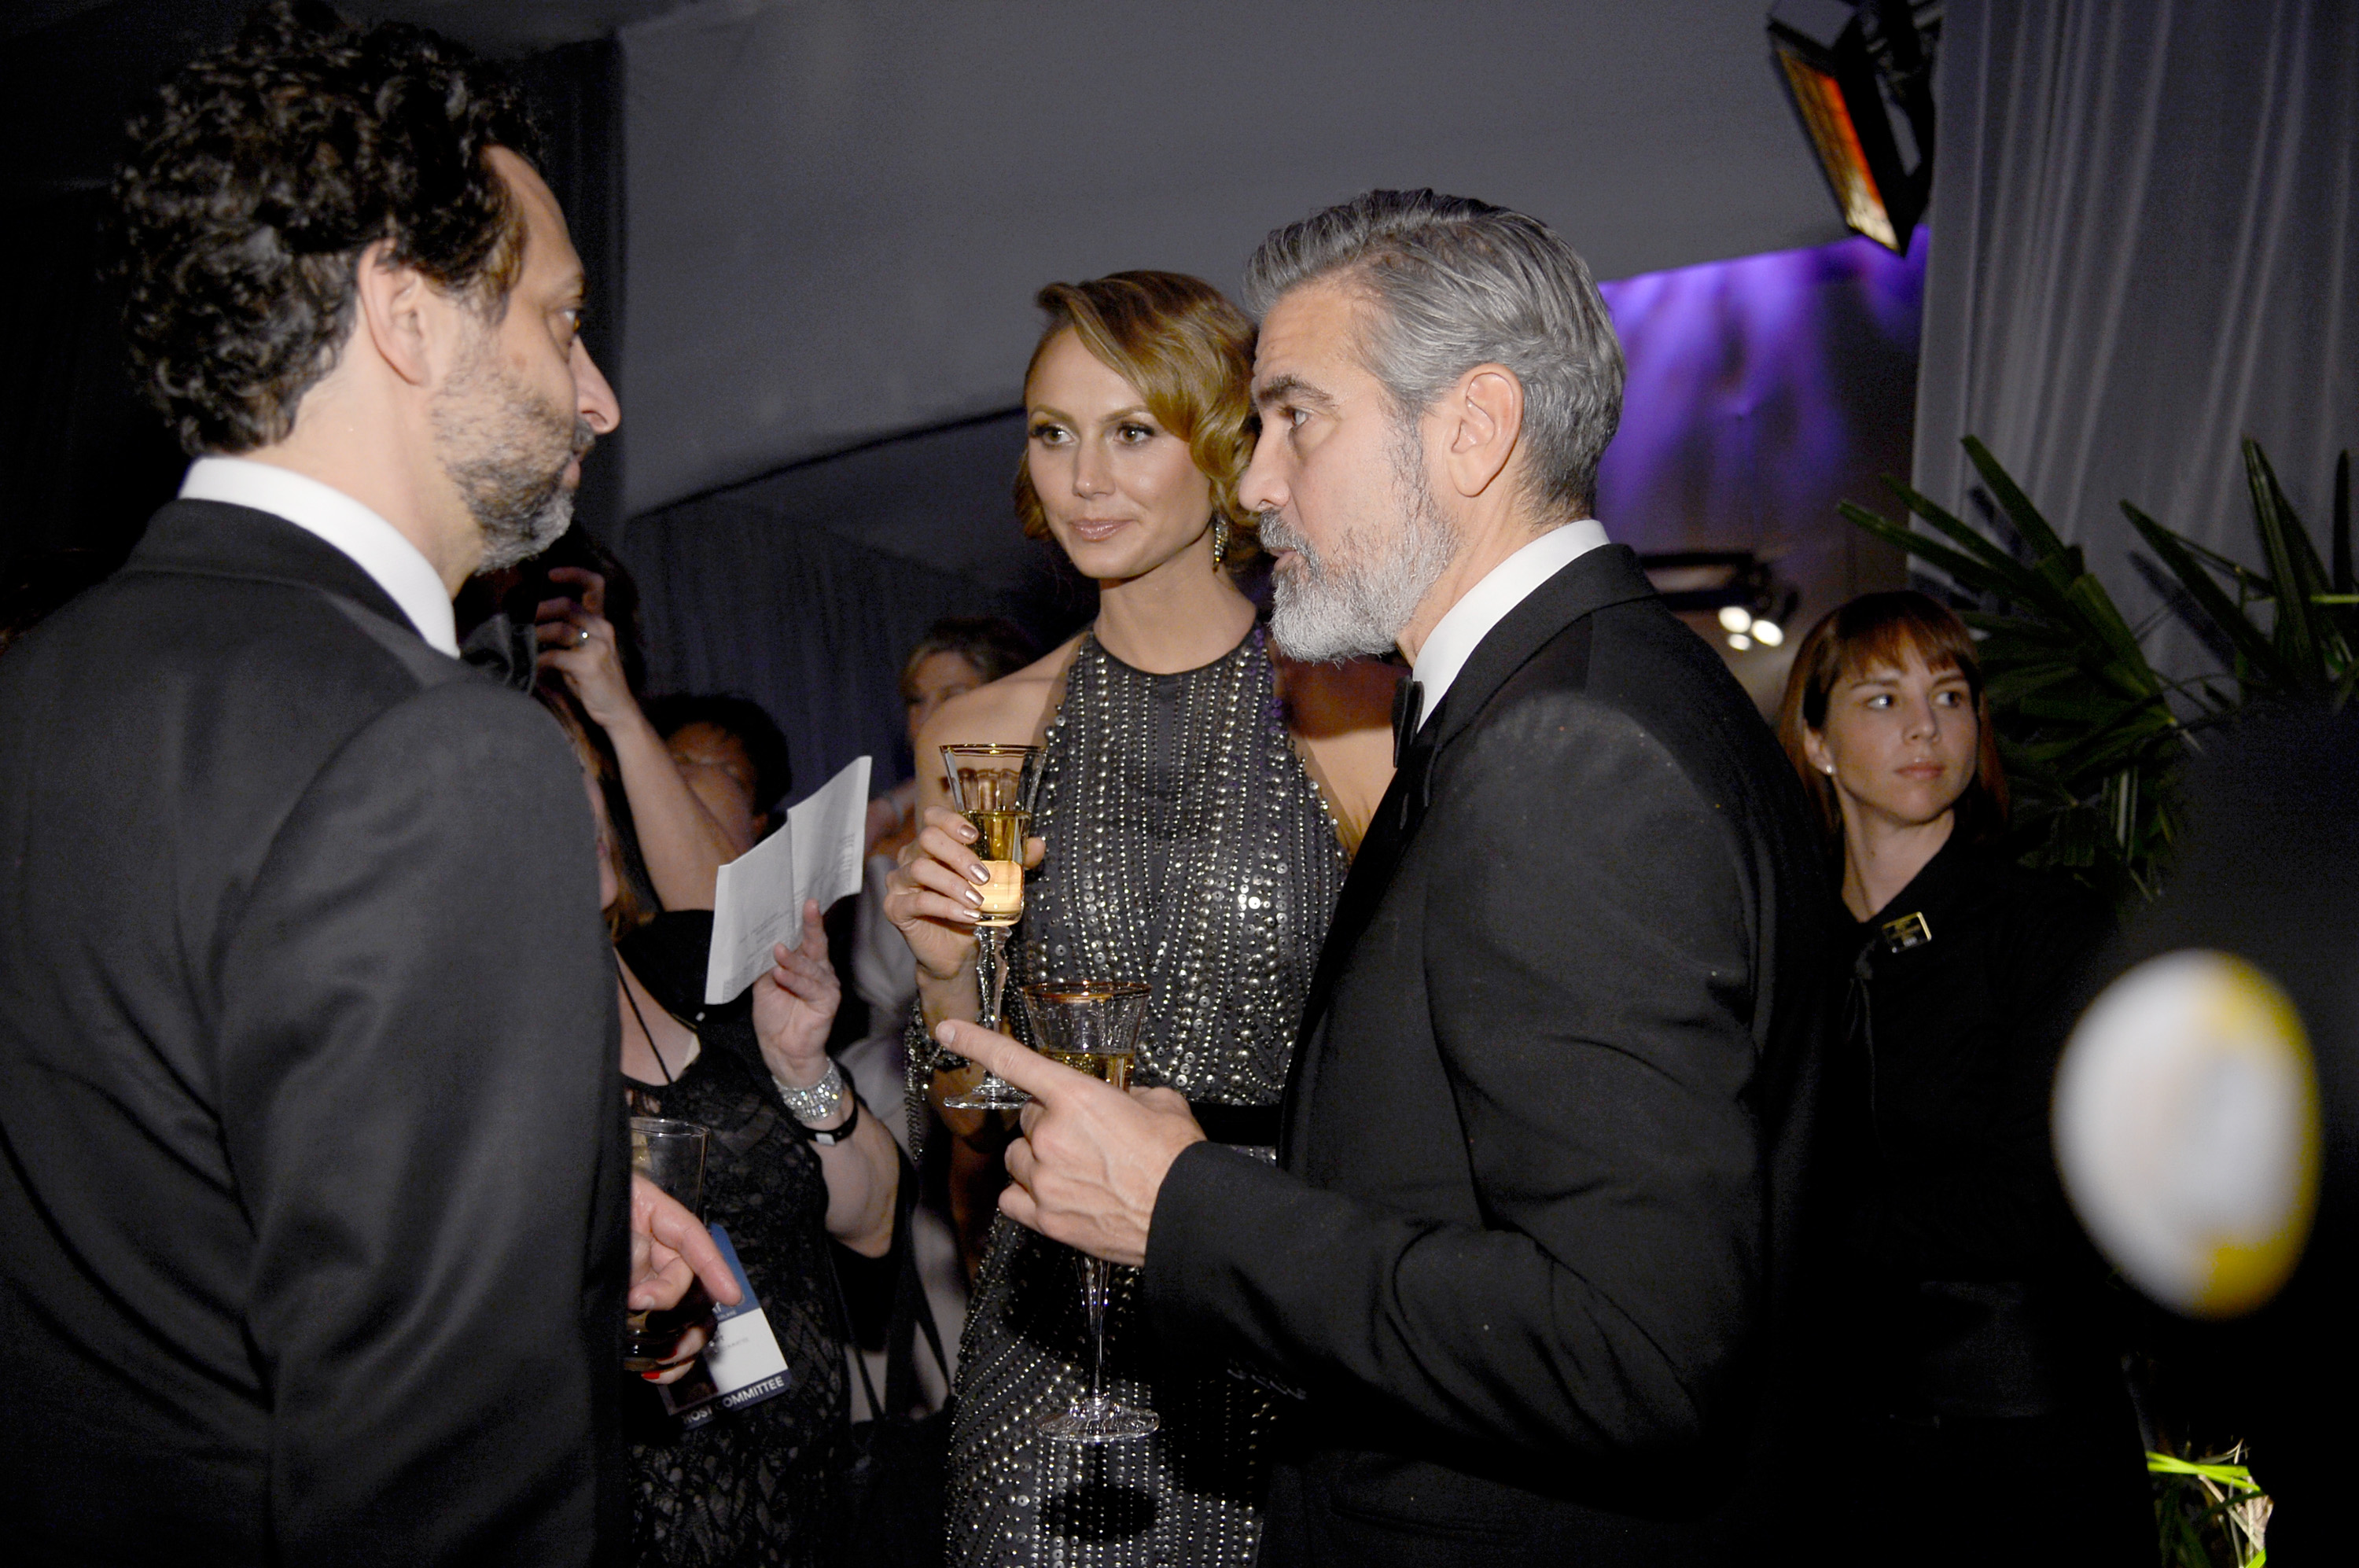 George Clooney and Stacy Keibler toasted with Champange at